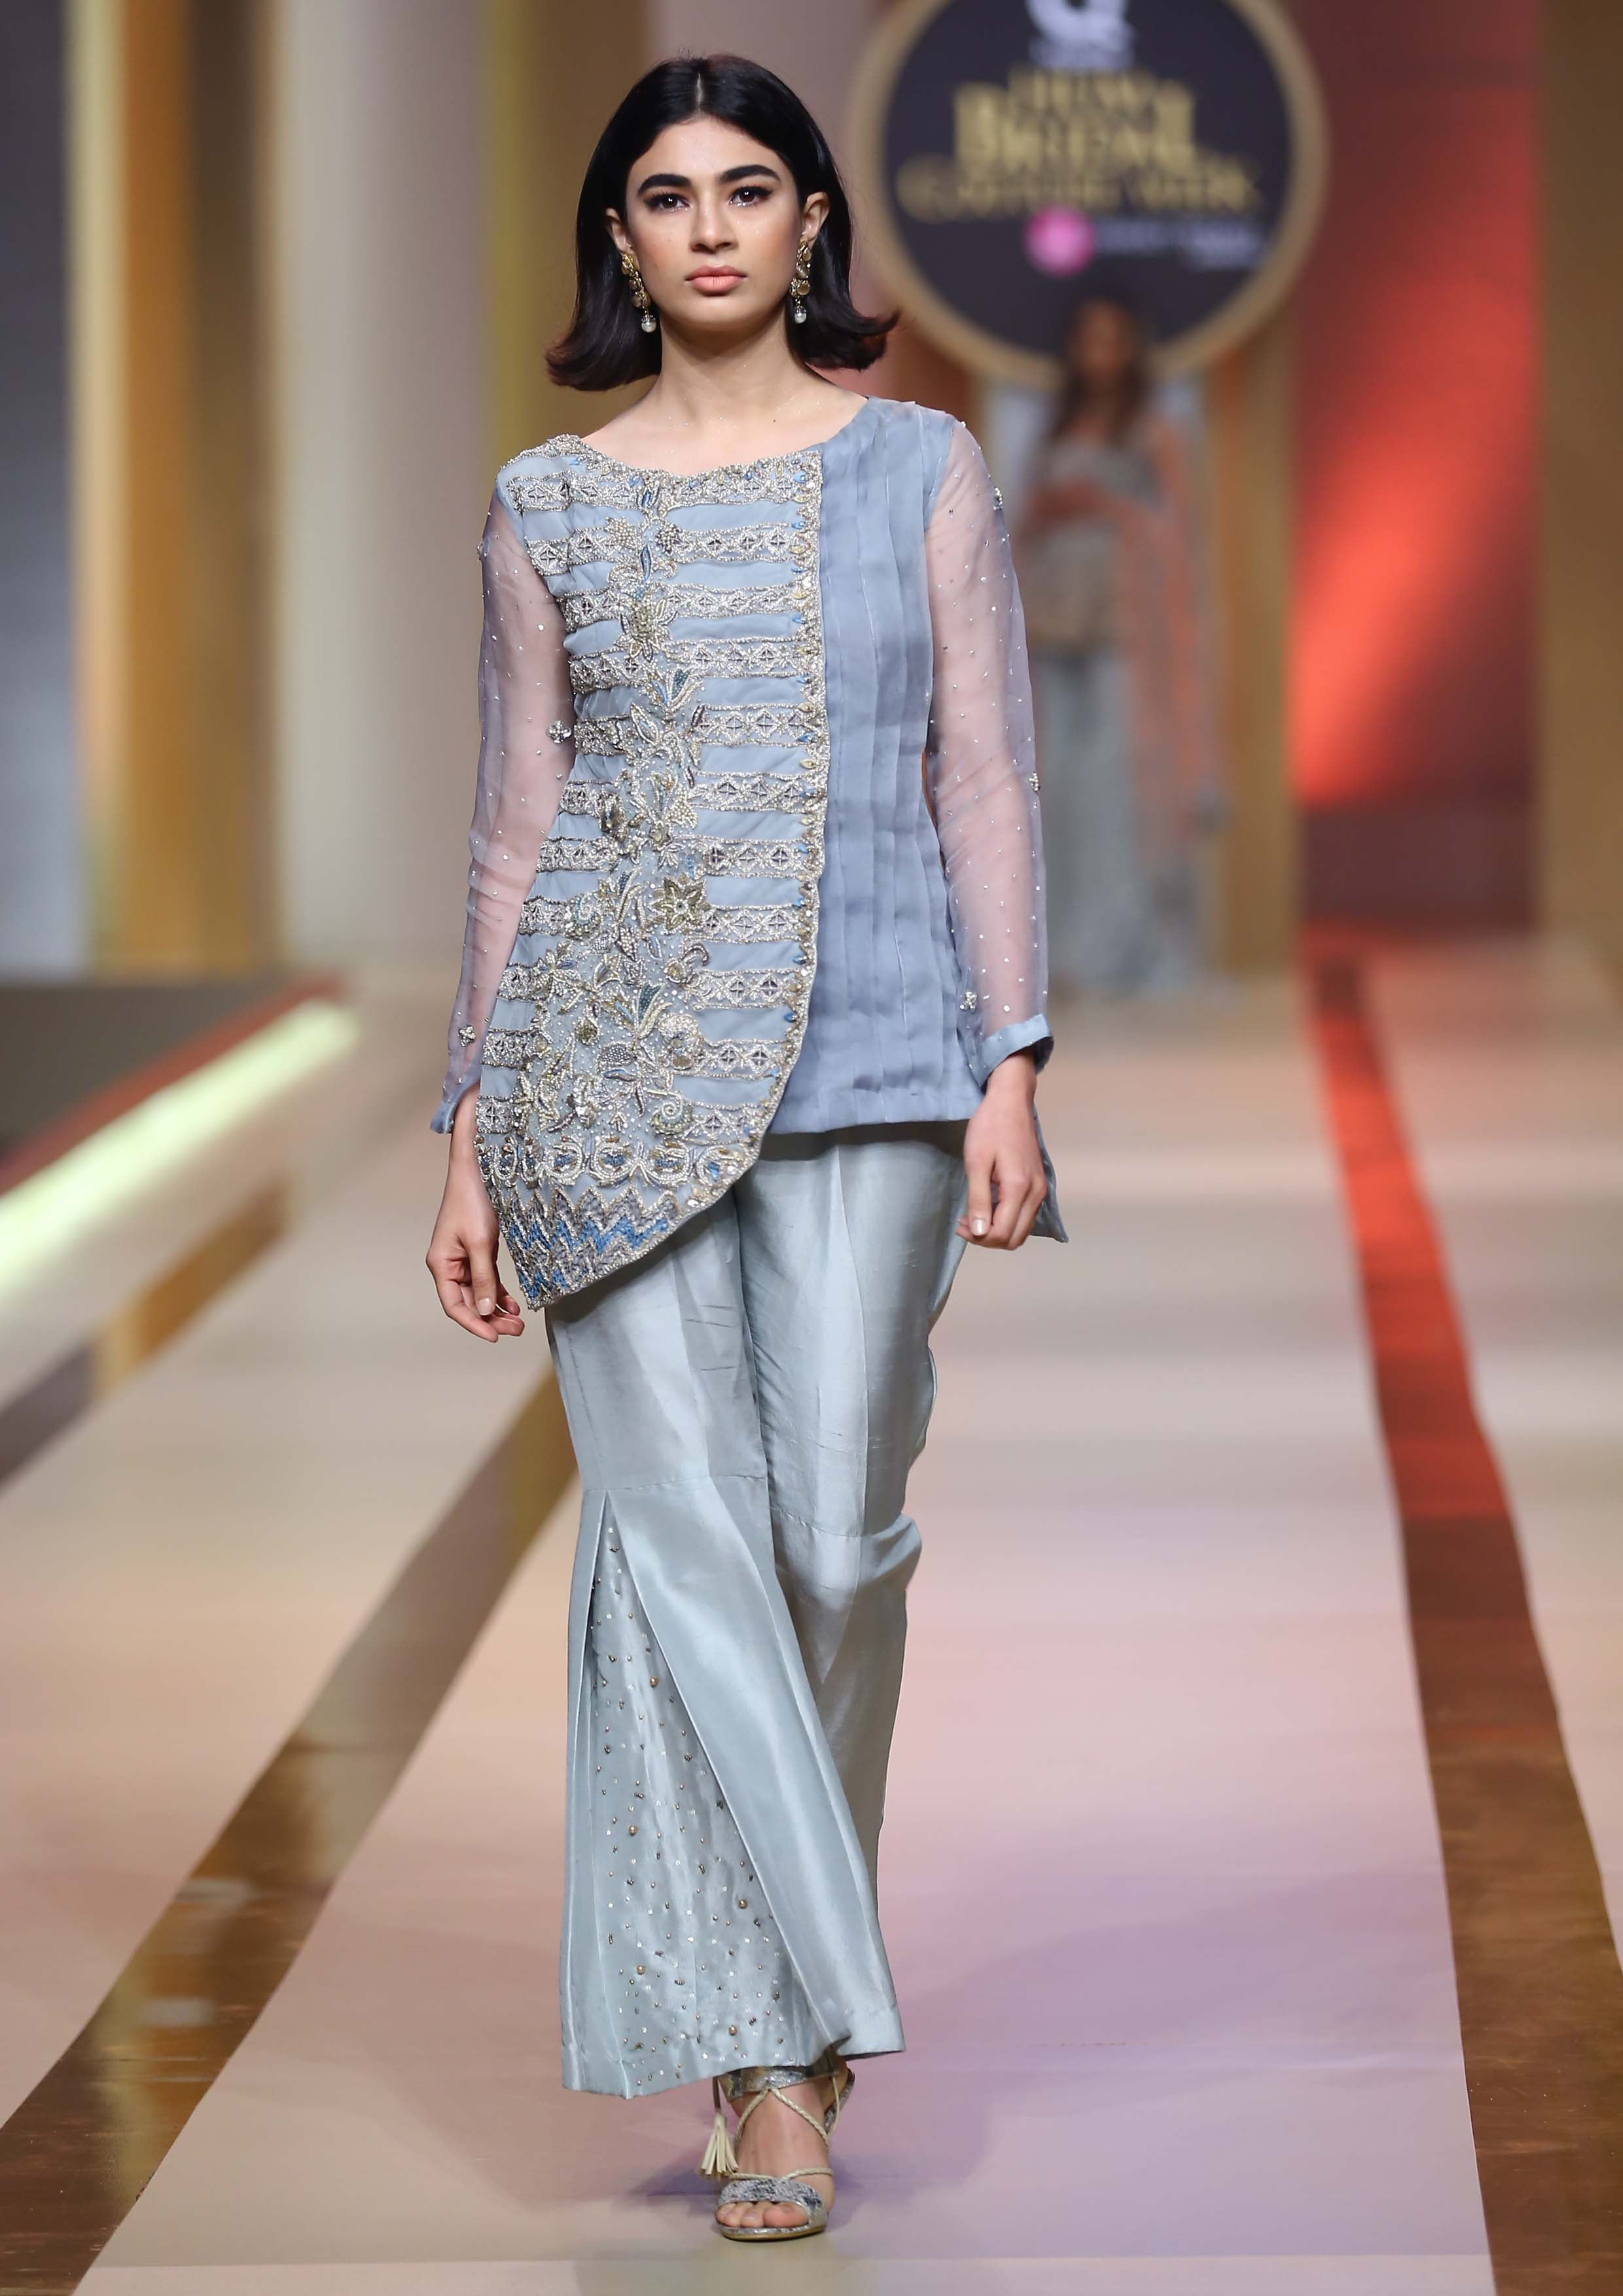 blue dress-[bridal and formal wedding] - Ayesha And Usman